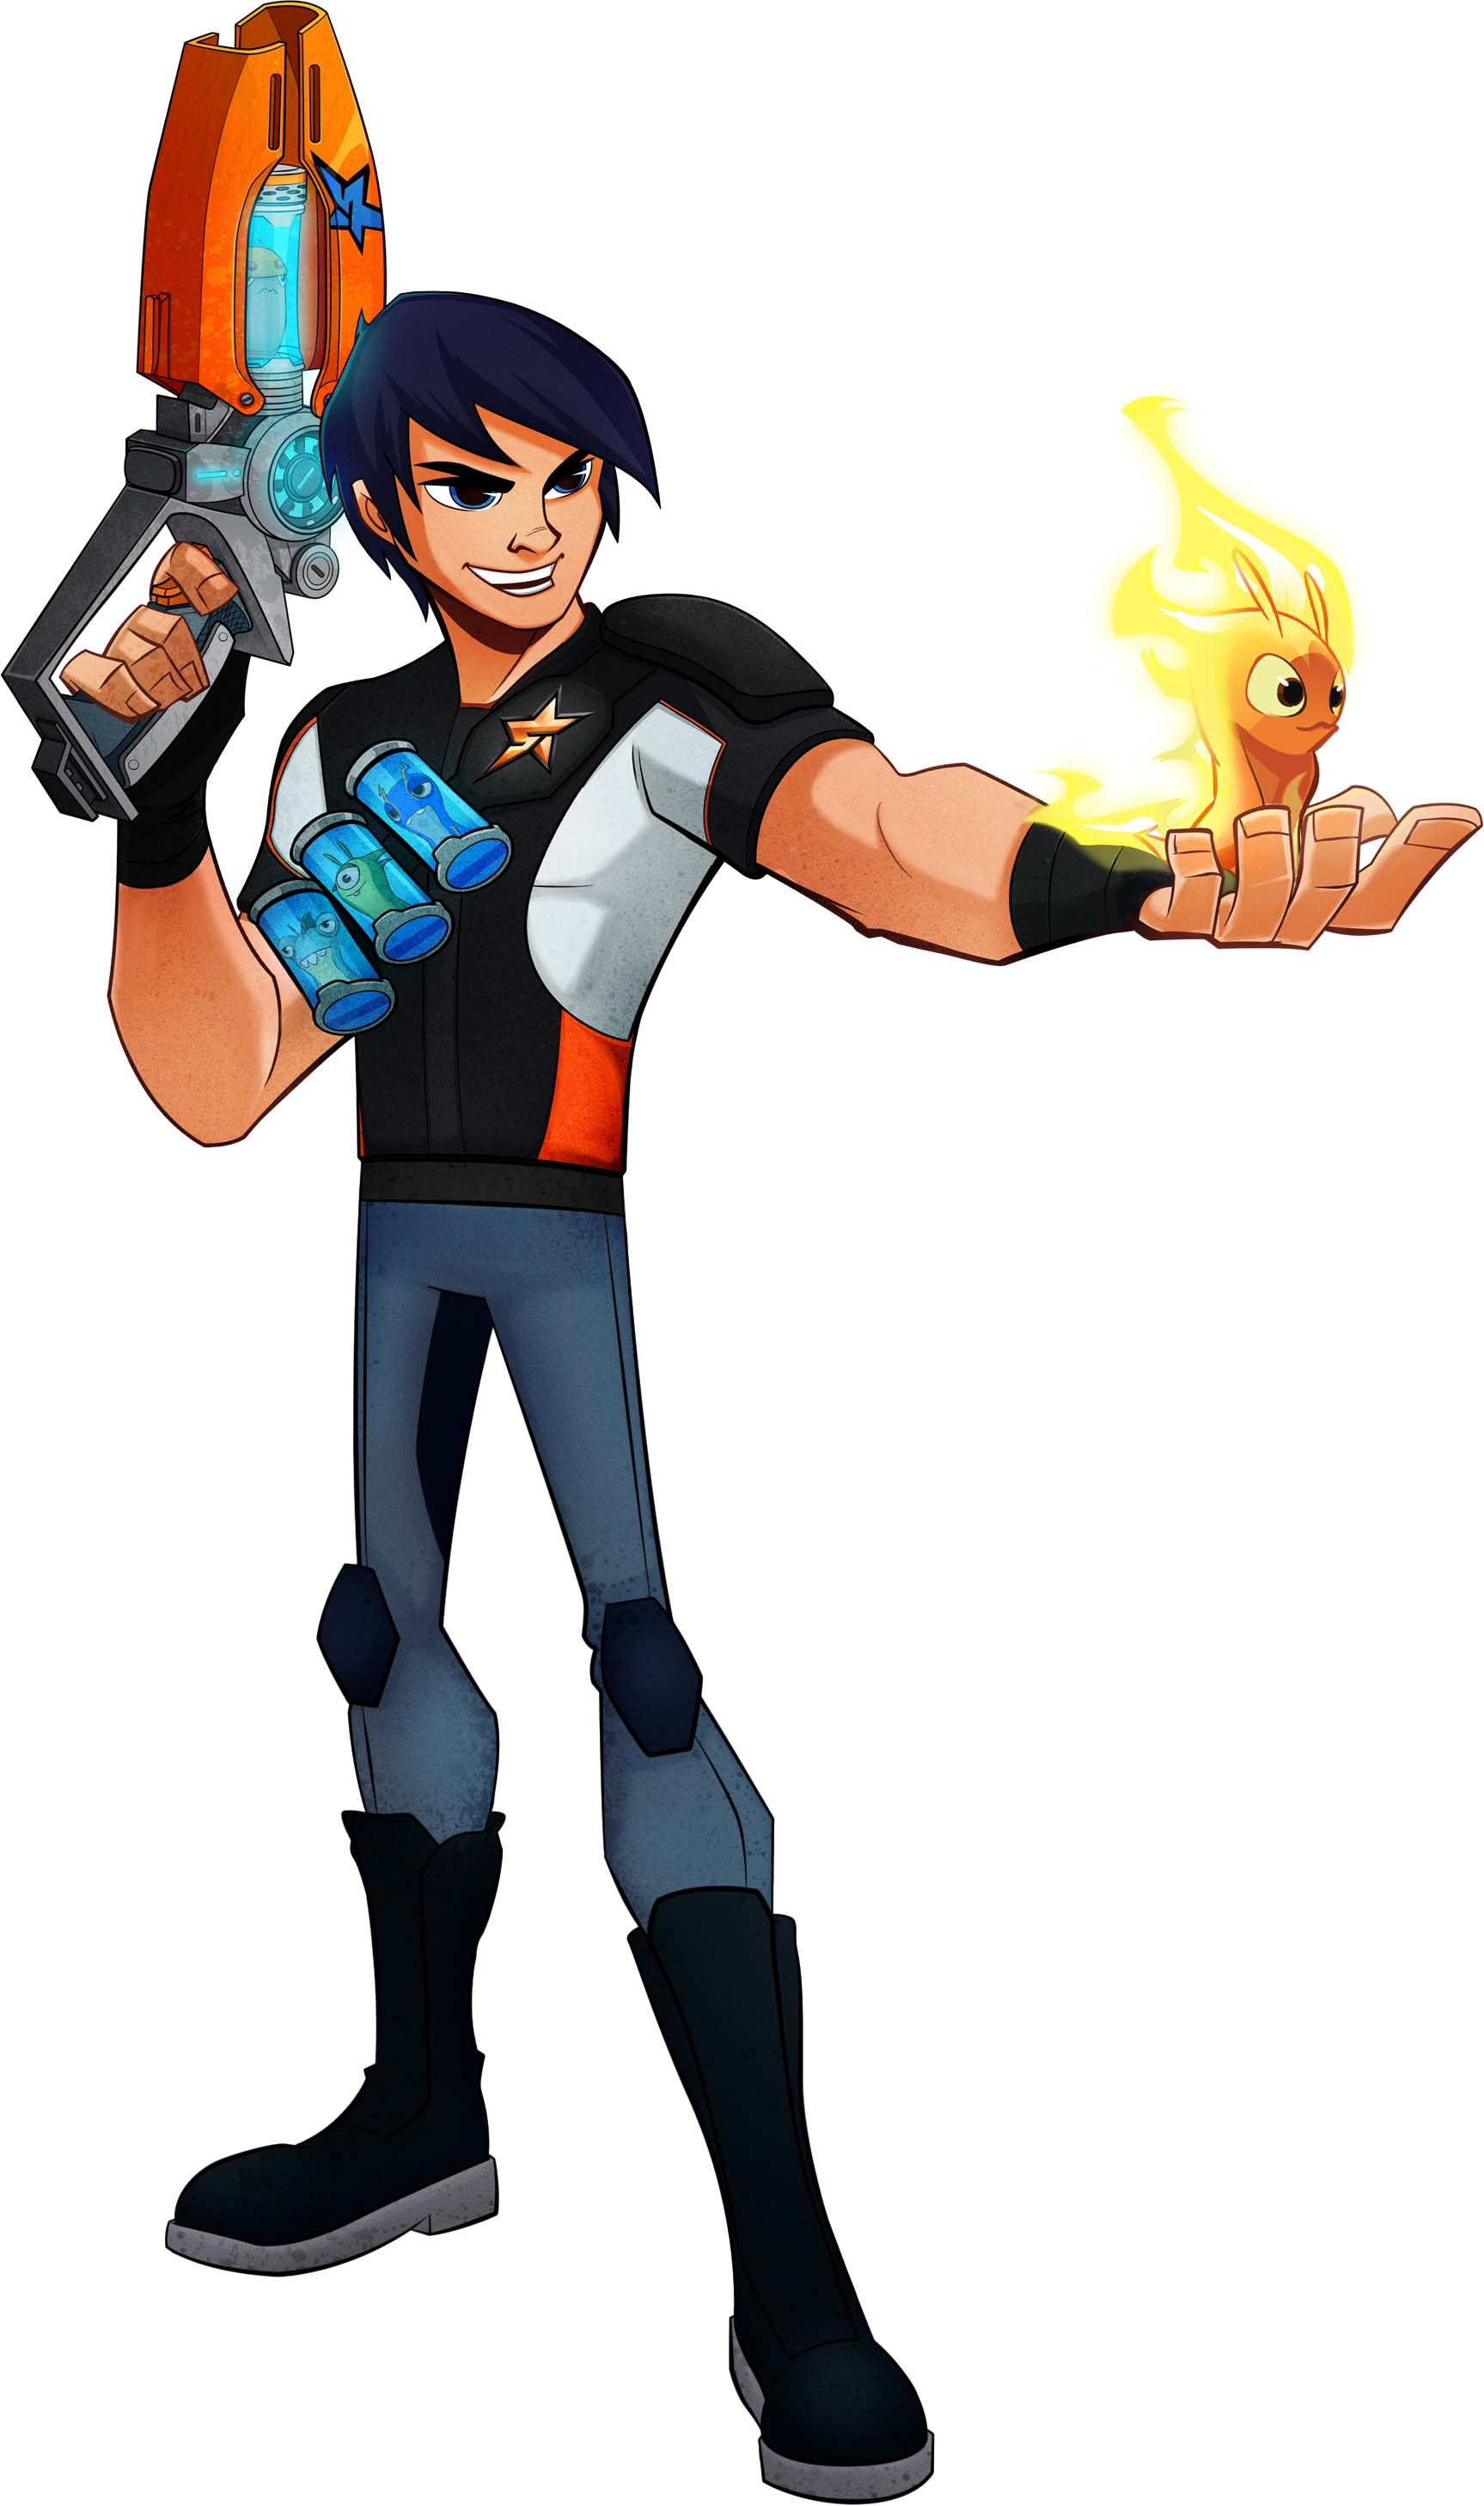 am very proud to join the Nerds and have no doubt Slugterra is ...